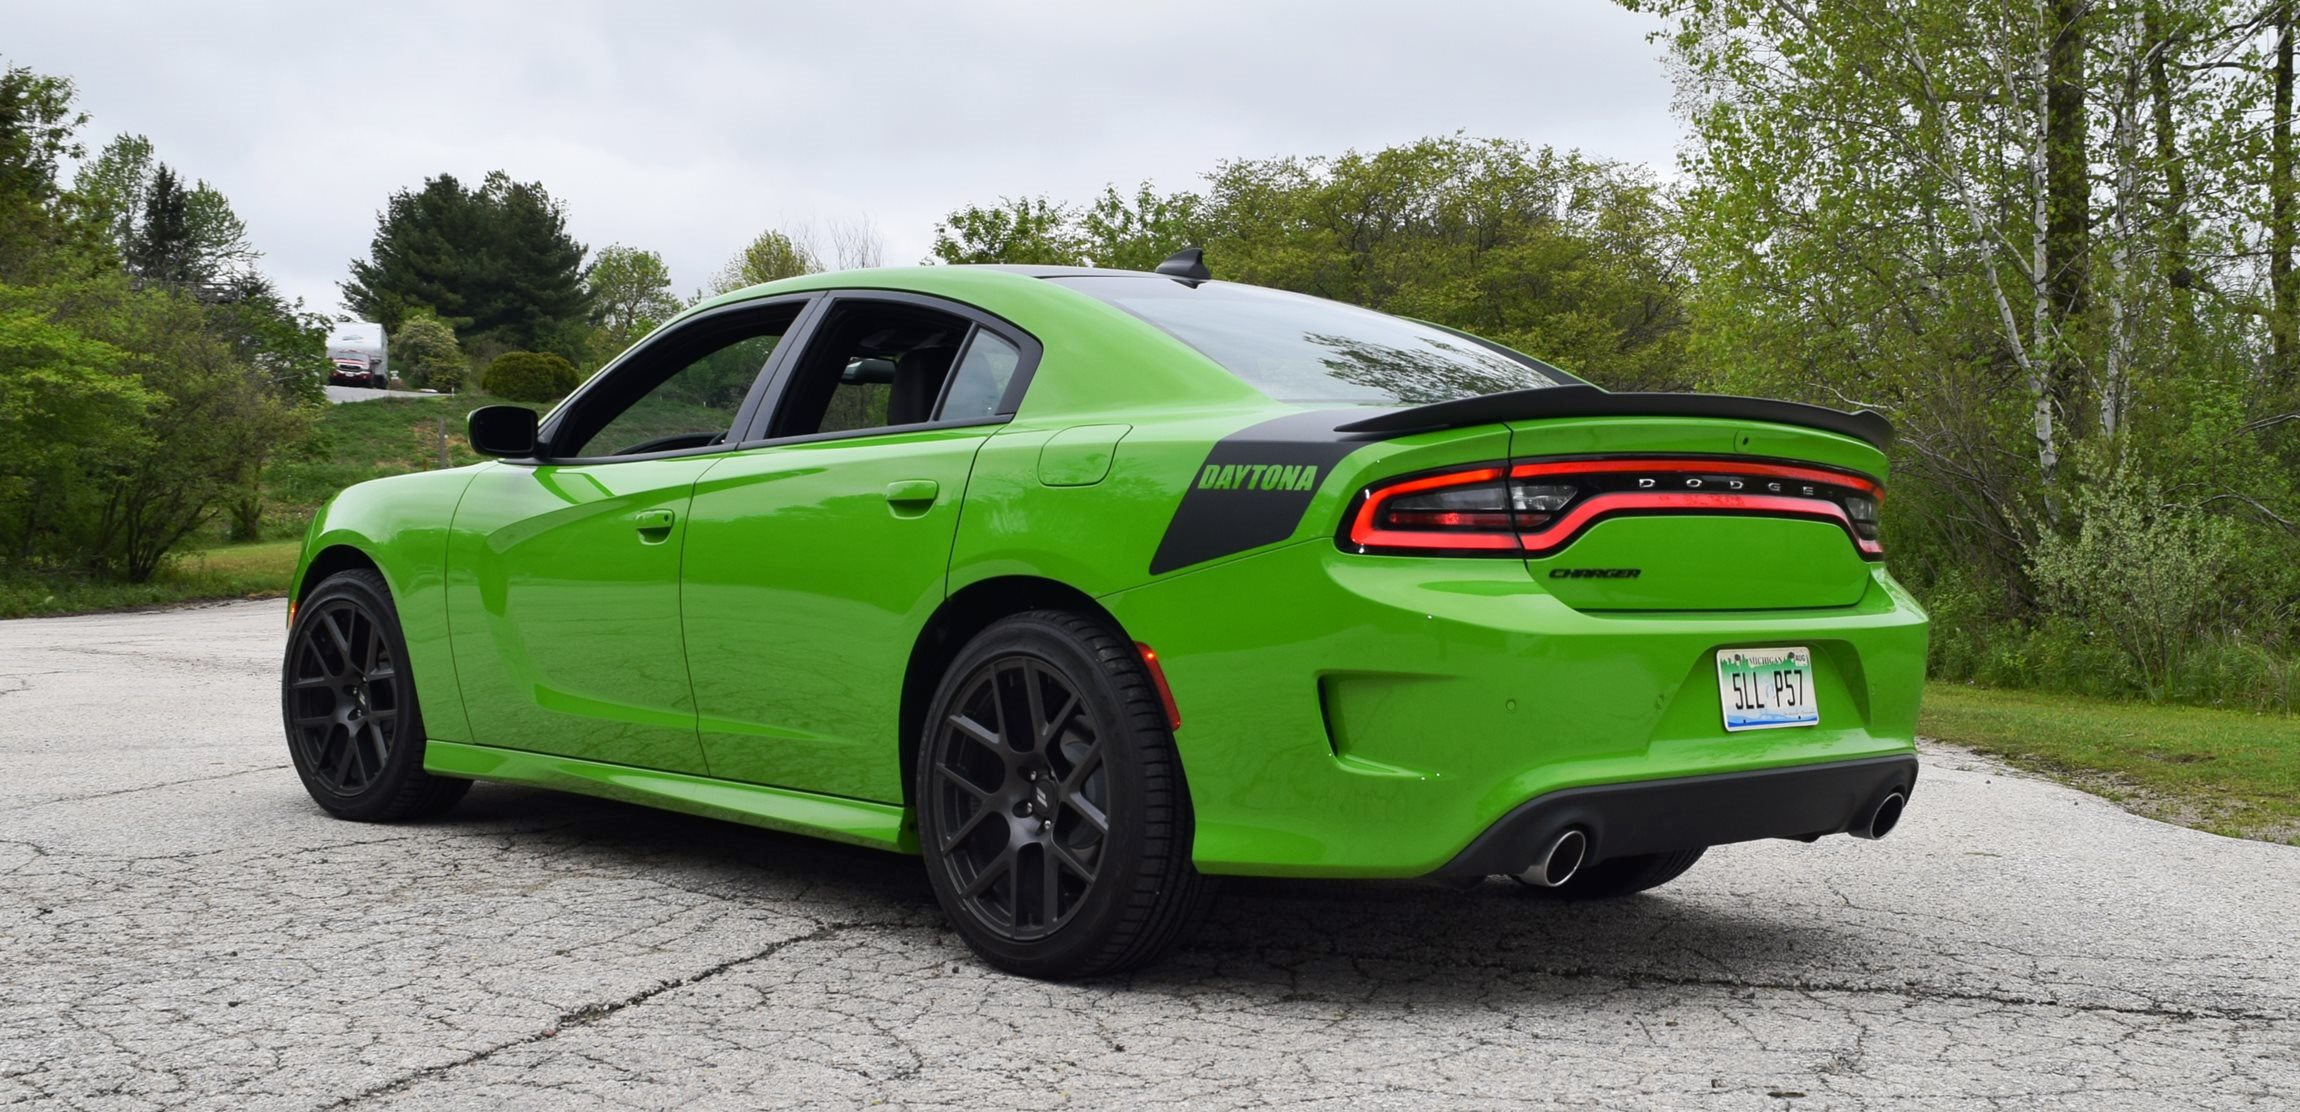 2017 Dodge Charger DAYTONA 25